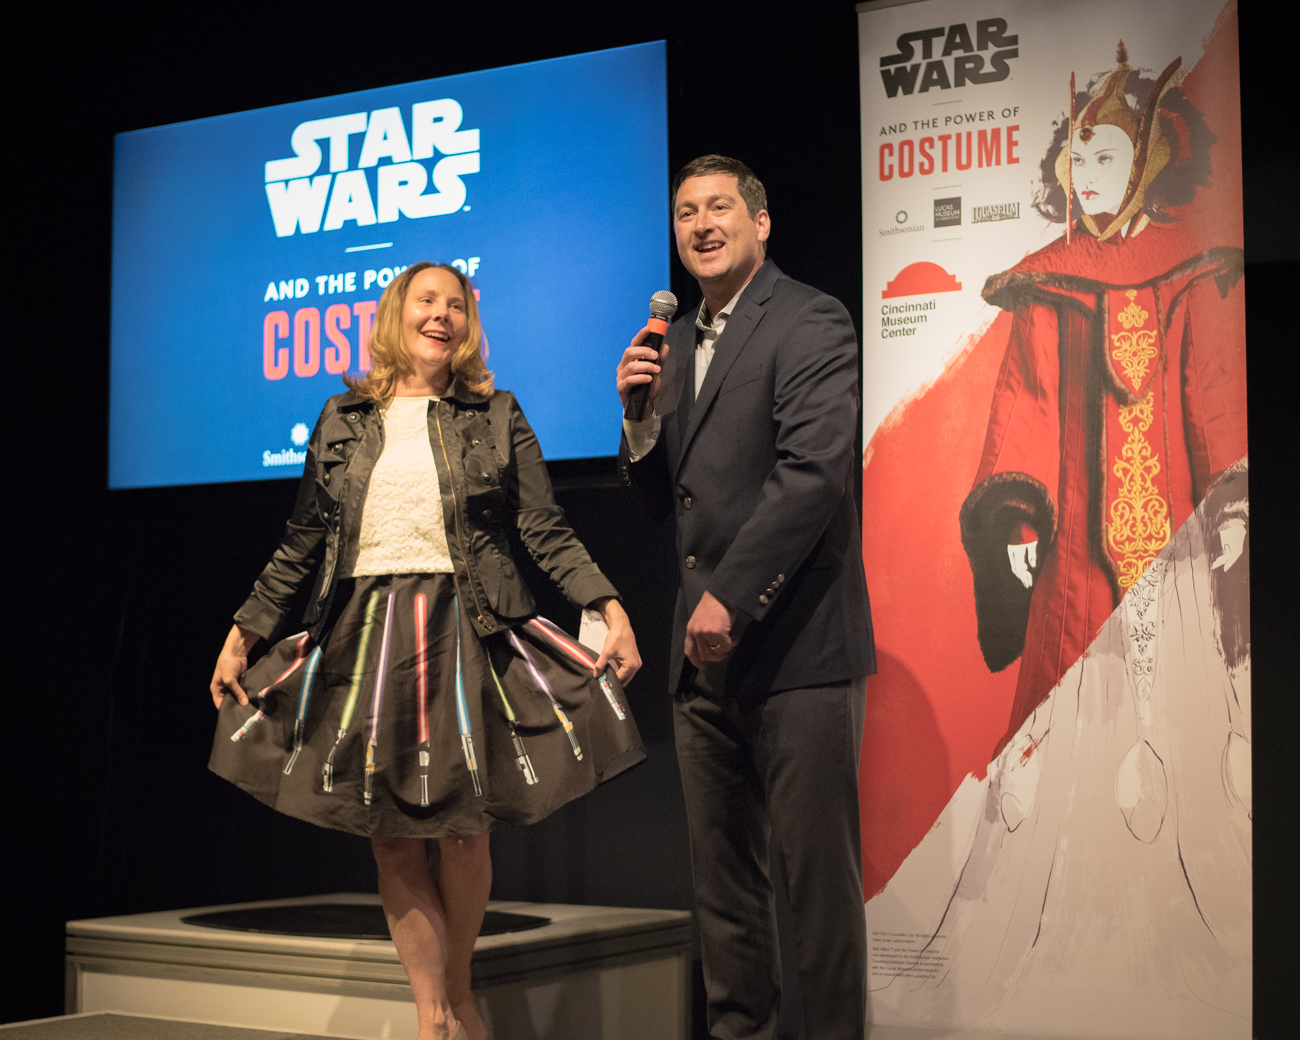 People: Elizabeth Pierce, President & CEO of the Cincinnati Museum Center with Saul Drake / Event: Star Wars and the Power of Costume media preview (5.24.17) / Image: Phil Armstrong, Cincinnati Refined // Published: 5.31.17